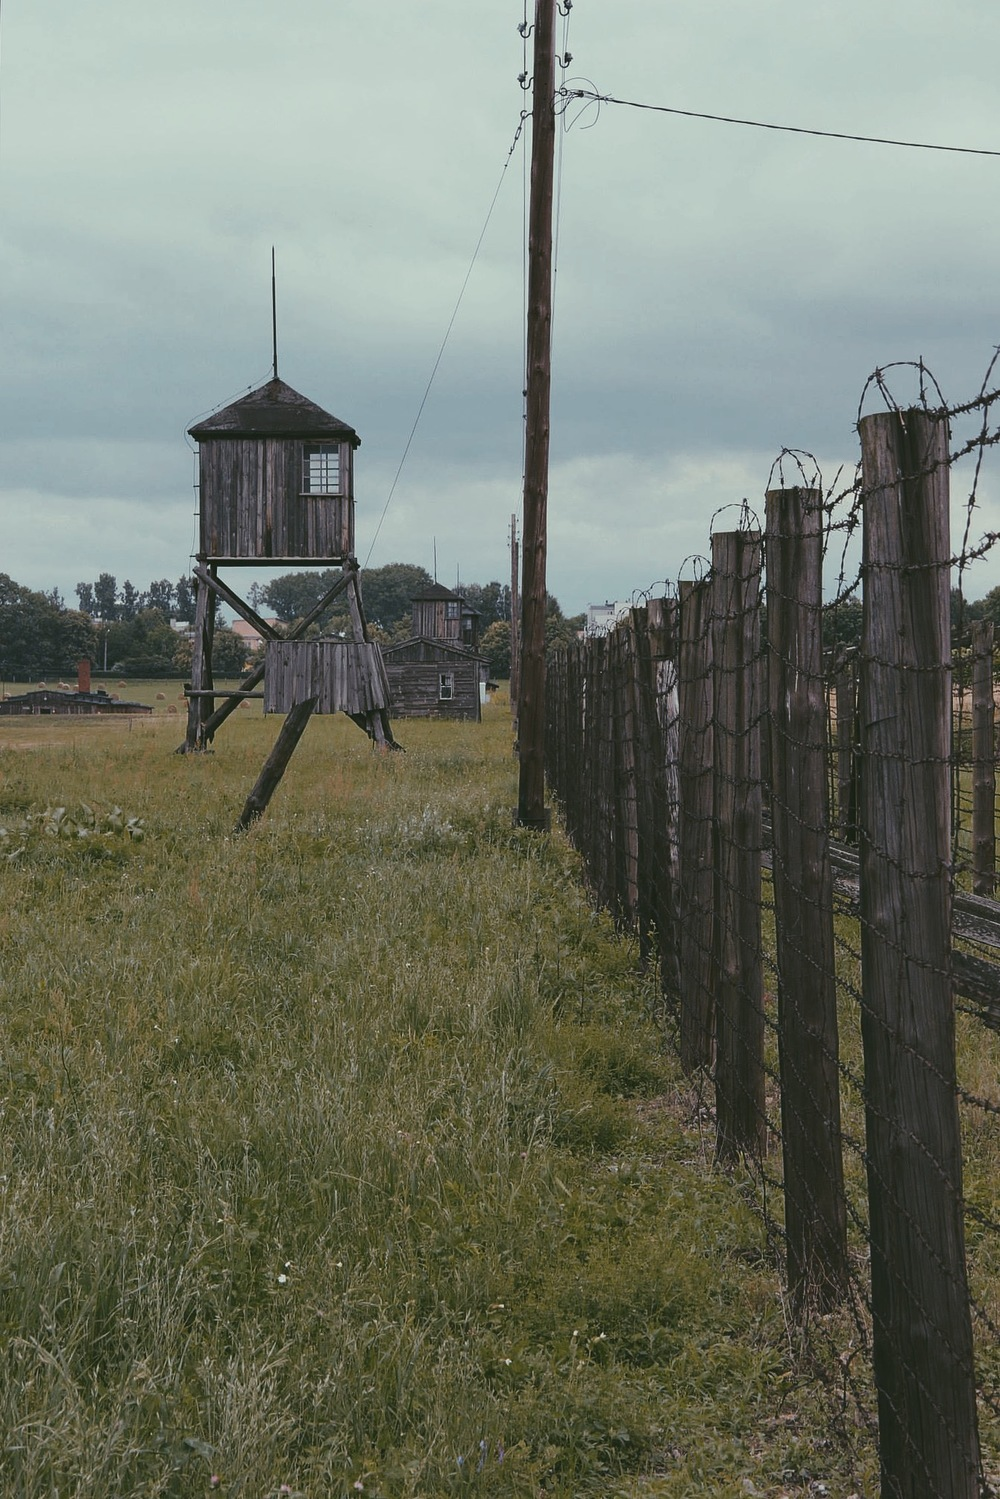 The outer perimeter of Majdanek concentration camp, 2013